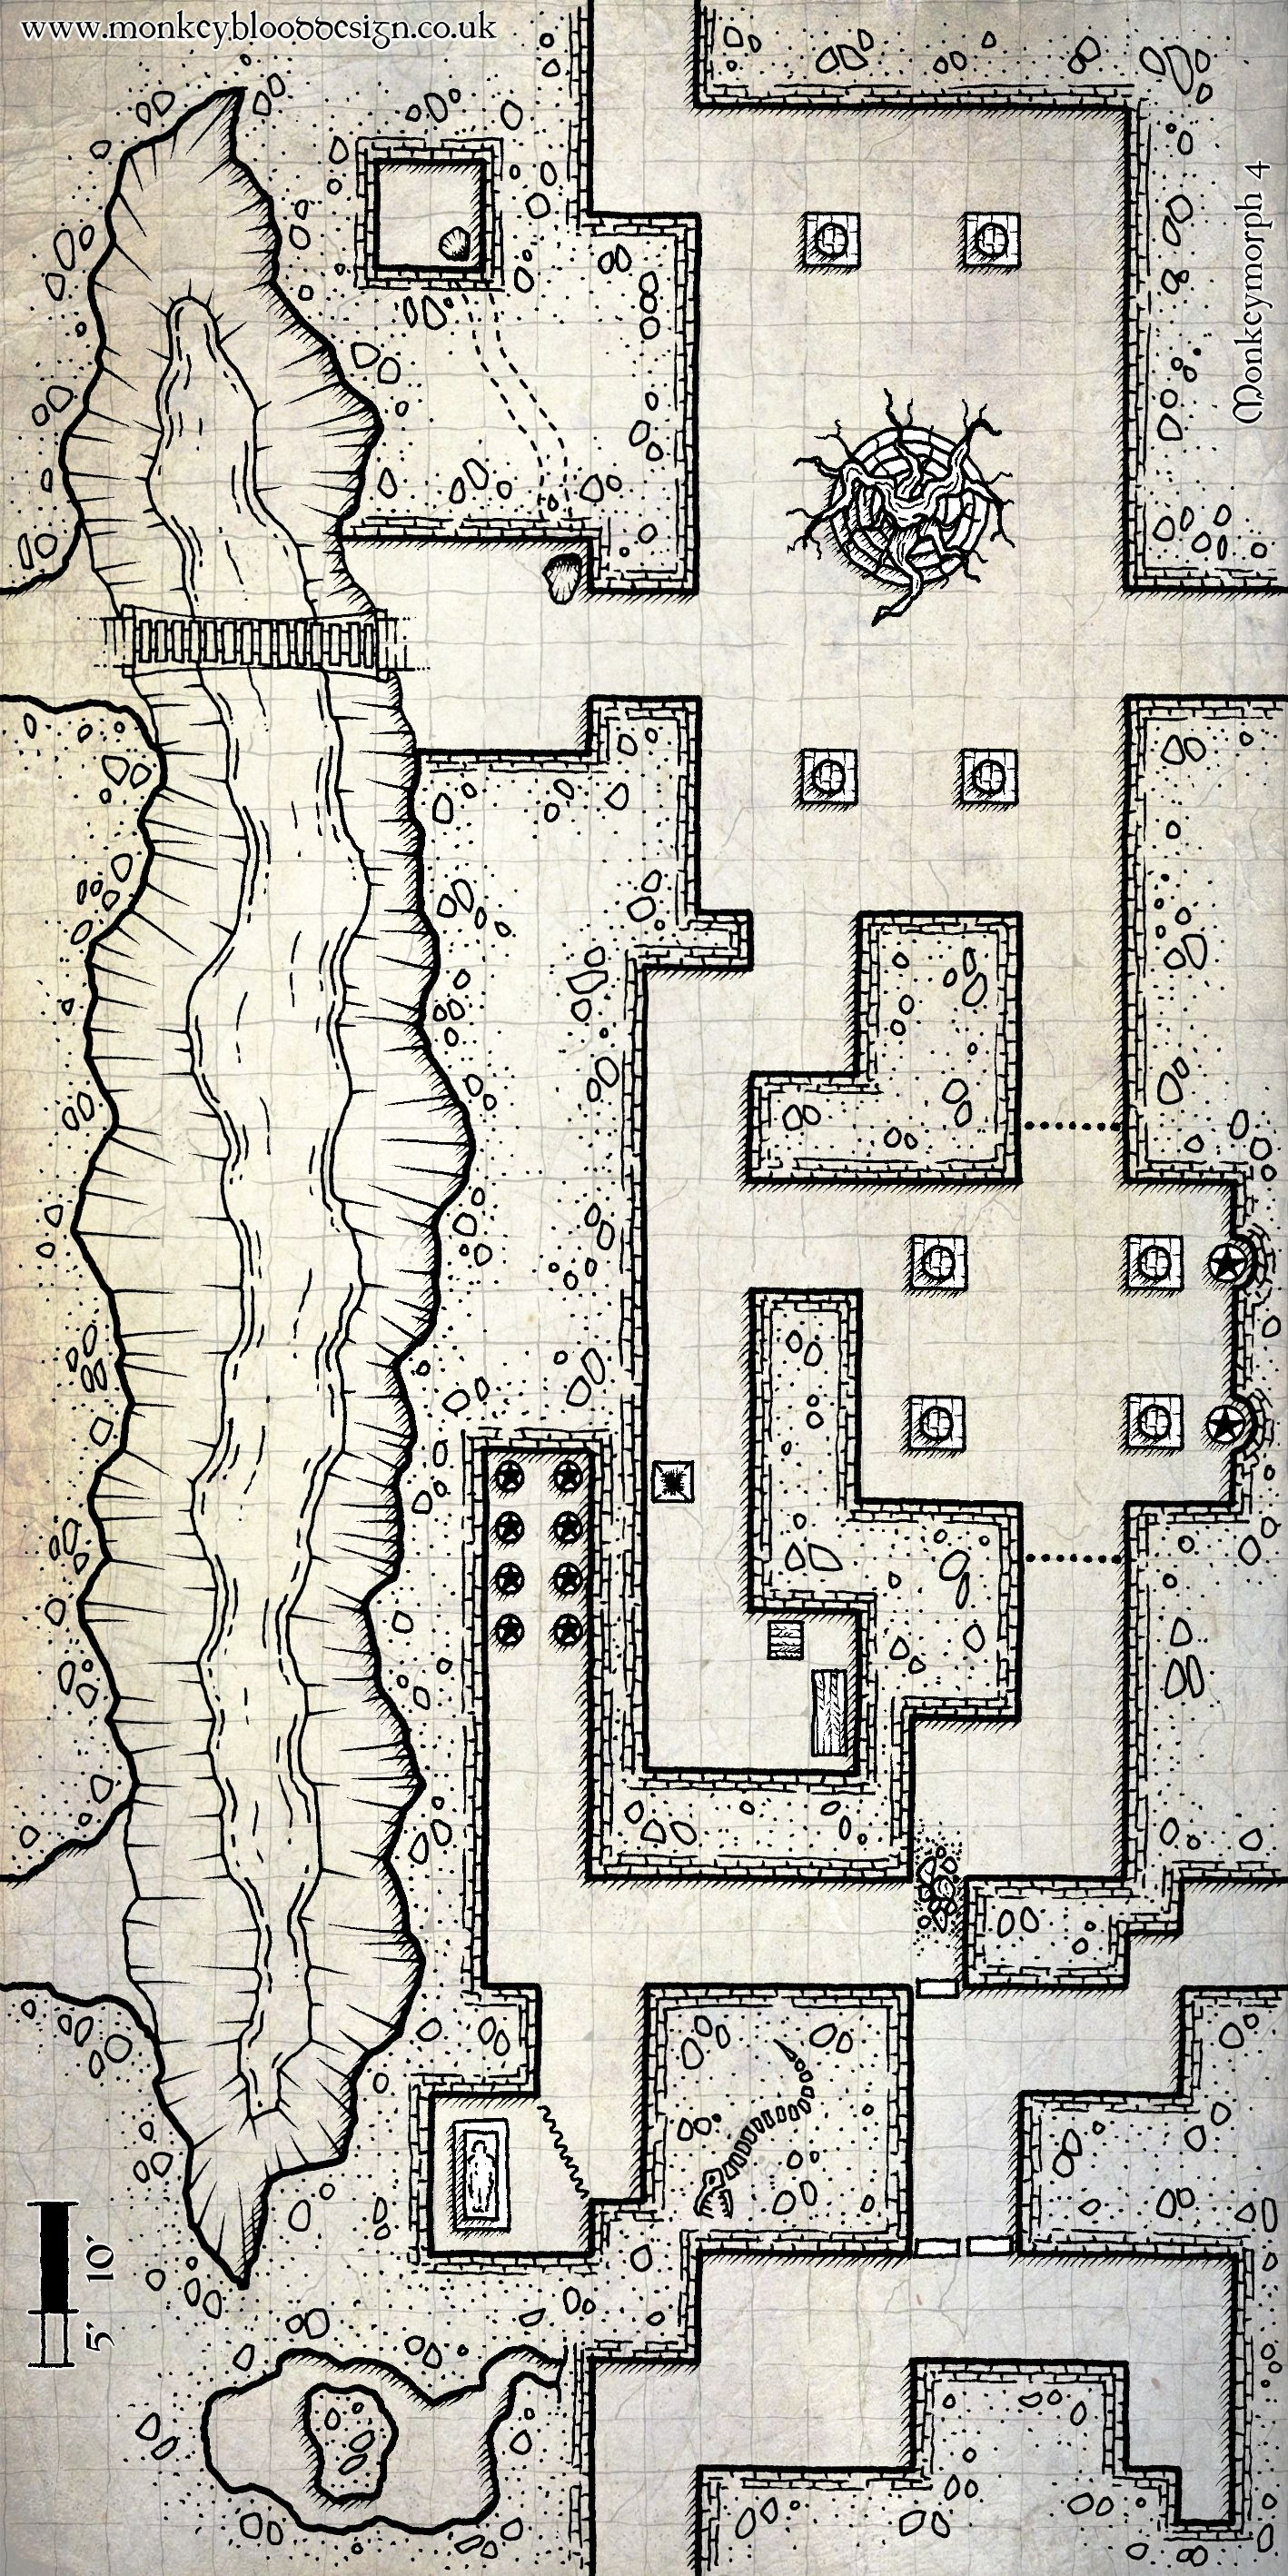 Pin by Fuzzylugnut on DnD Maps and Stuff | Dungeon maps, Fantasy map